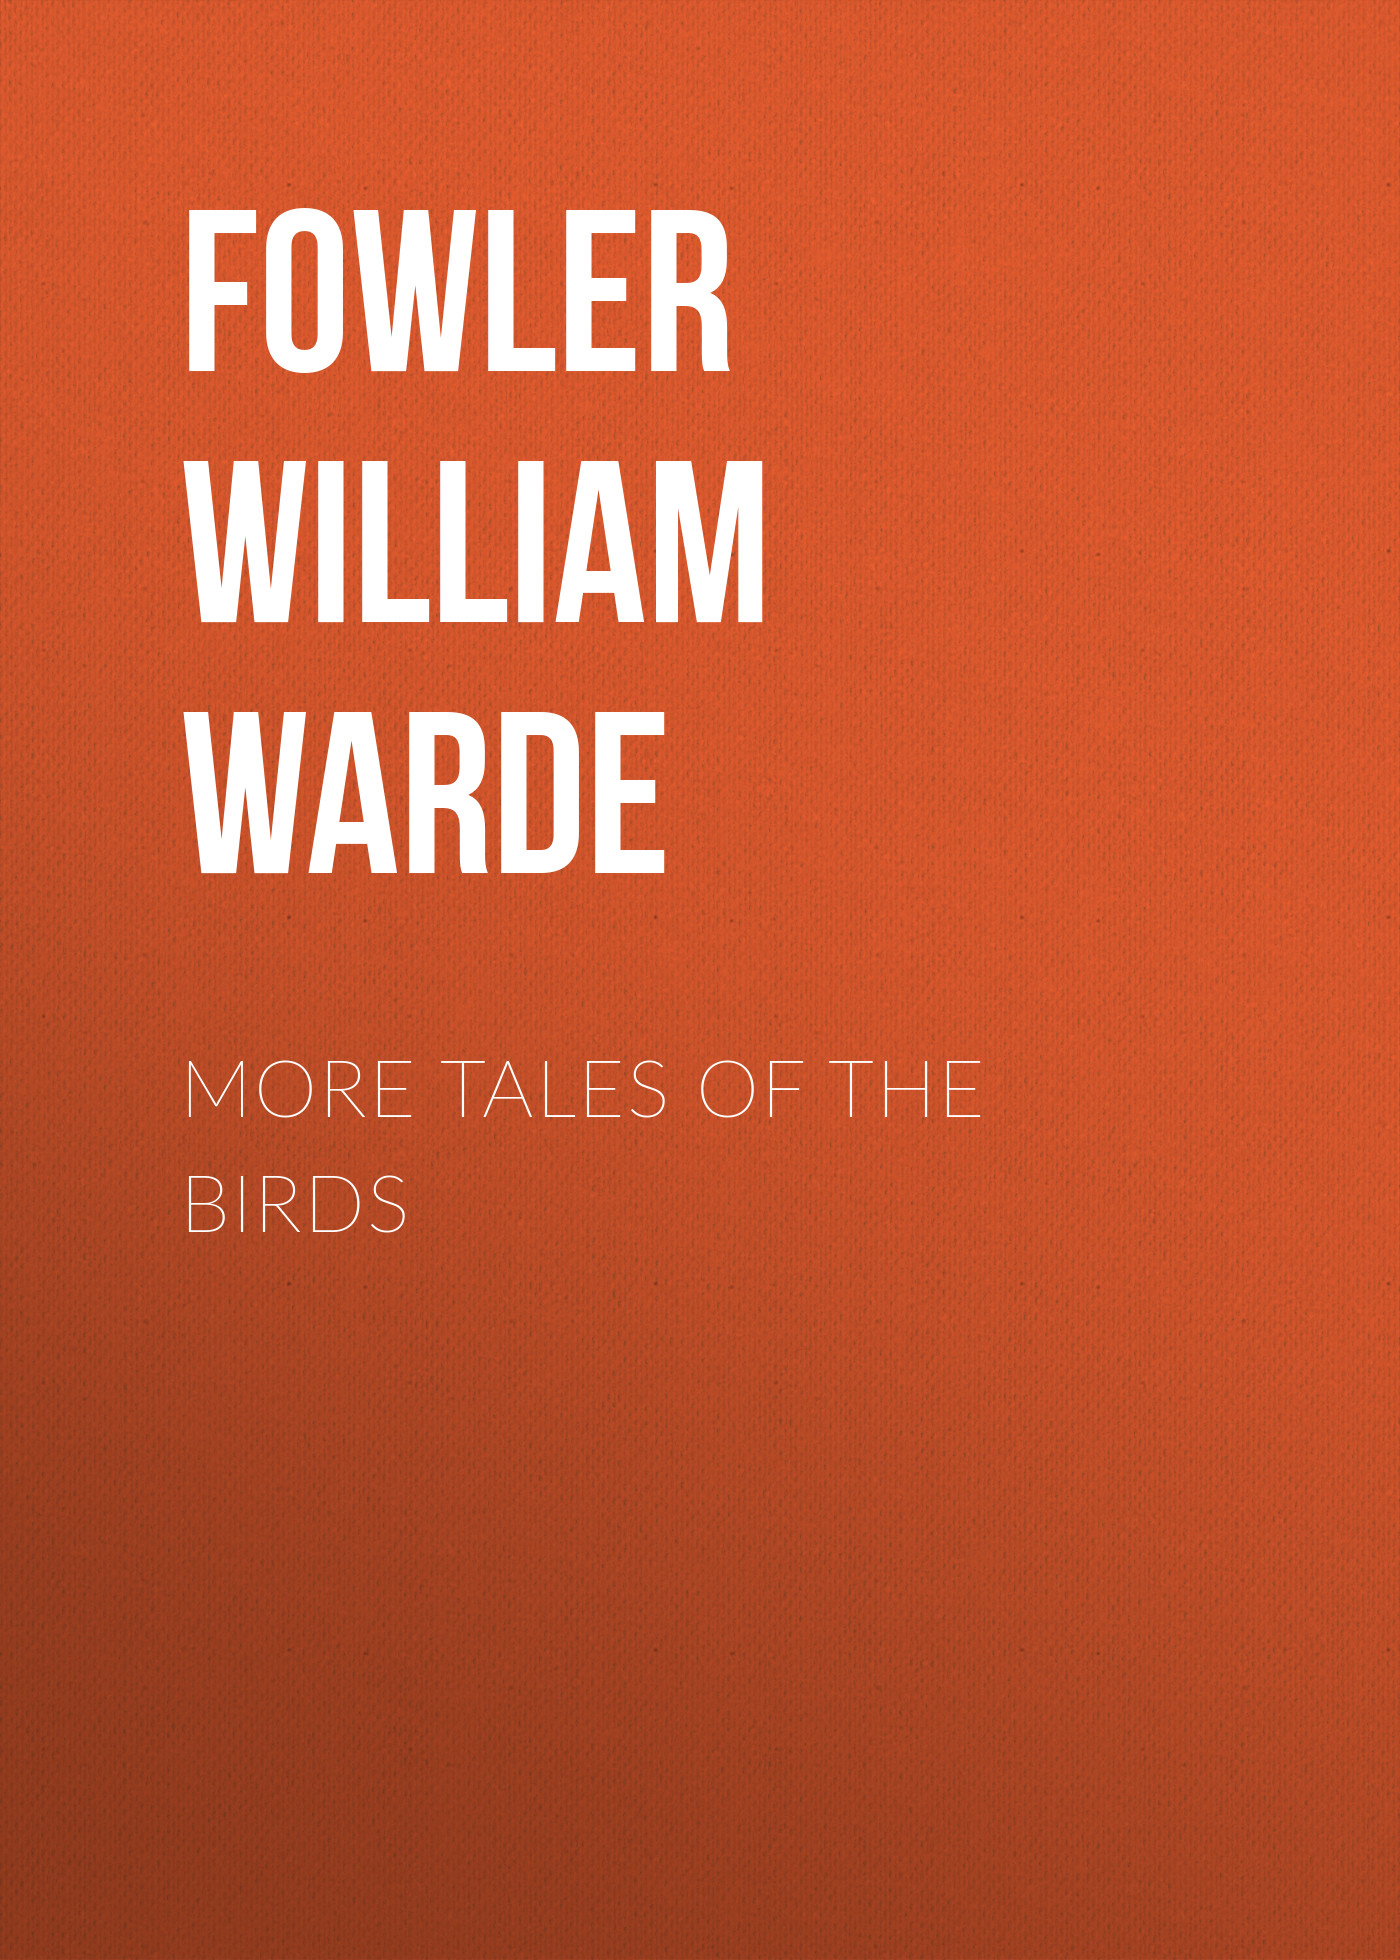 Fowler William Warde More Tales of the Birds adam fowler nosql for dummies